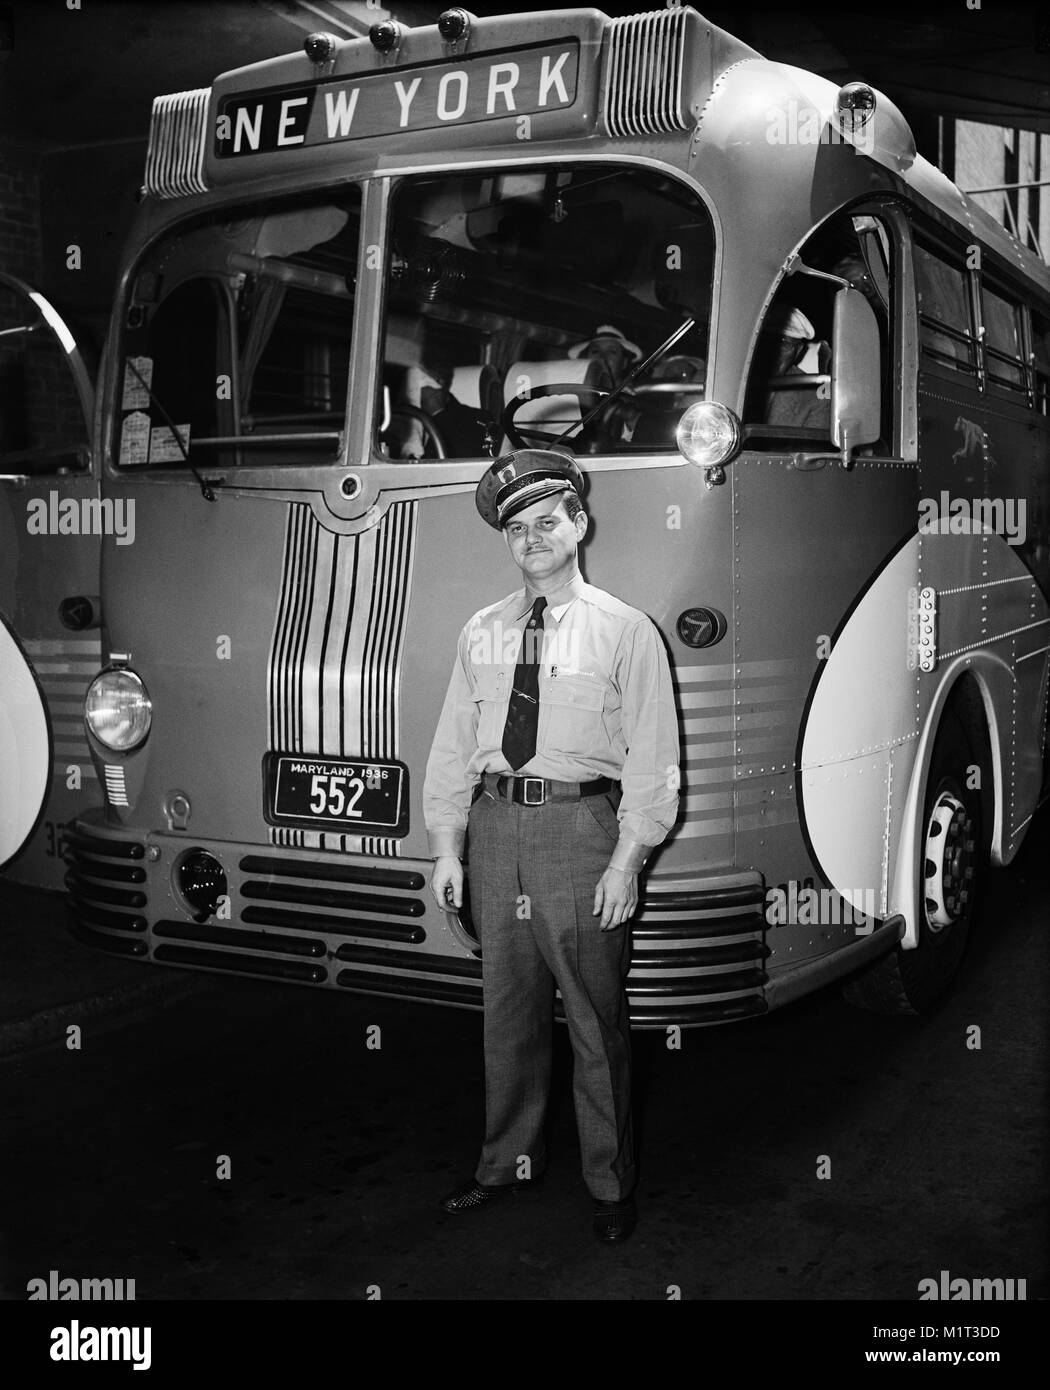 Greyhound Lines Bus Driver Standing next to Bus Headed for New York, Harris & Ewing, 1937 - Stock Image